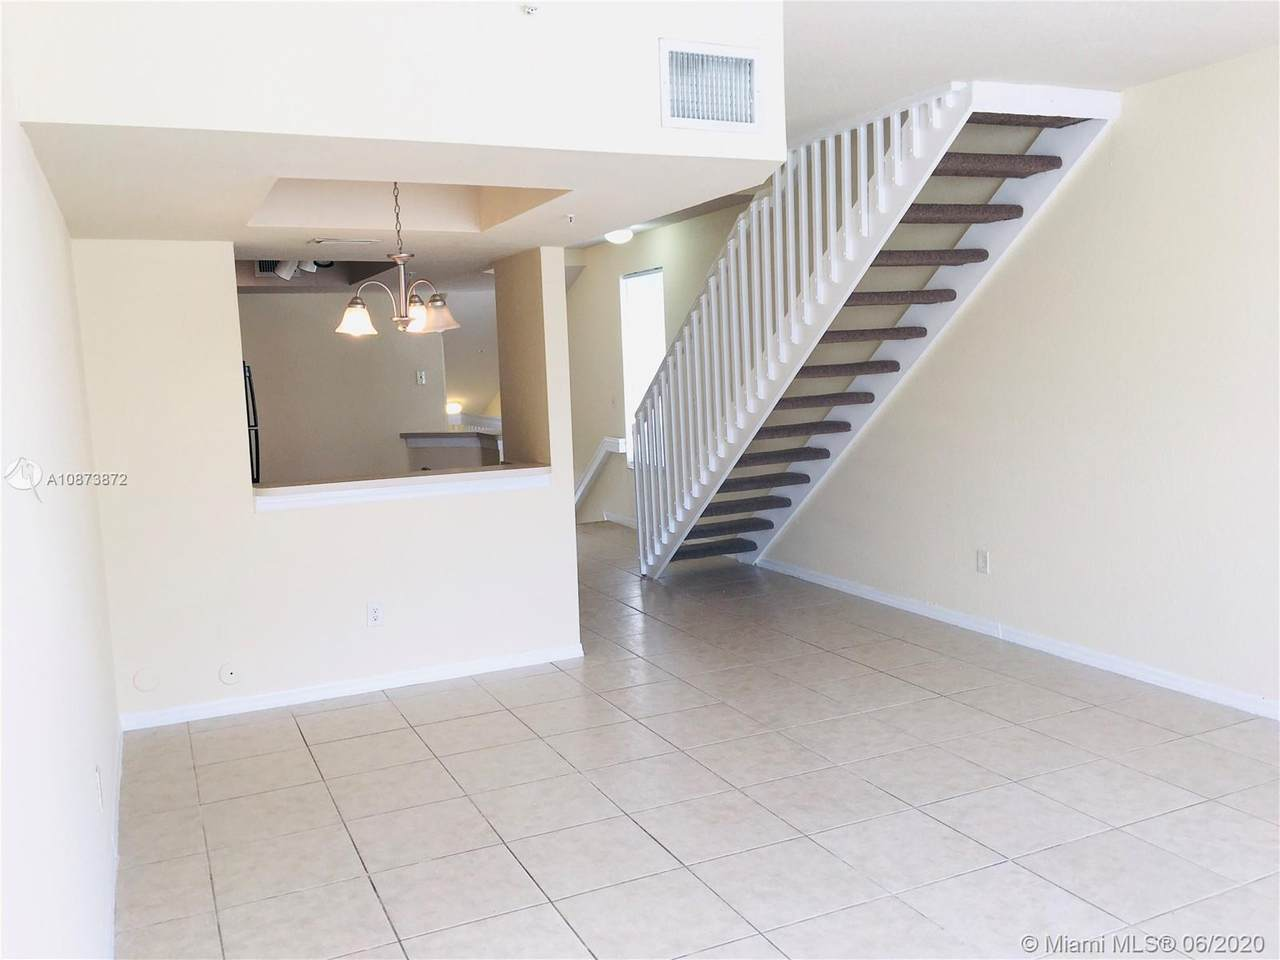 735 148th Ave - Photo 1